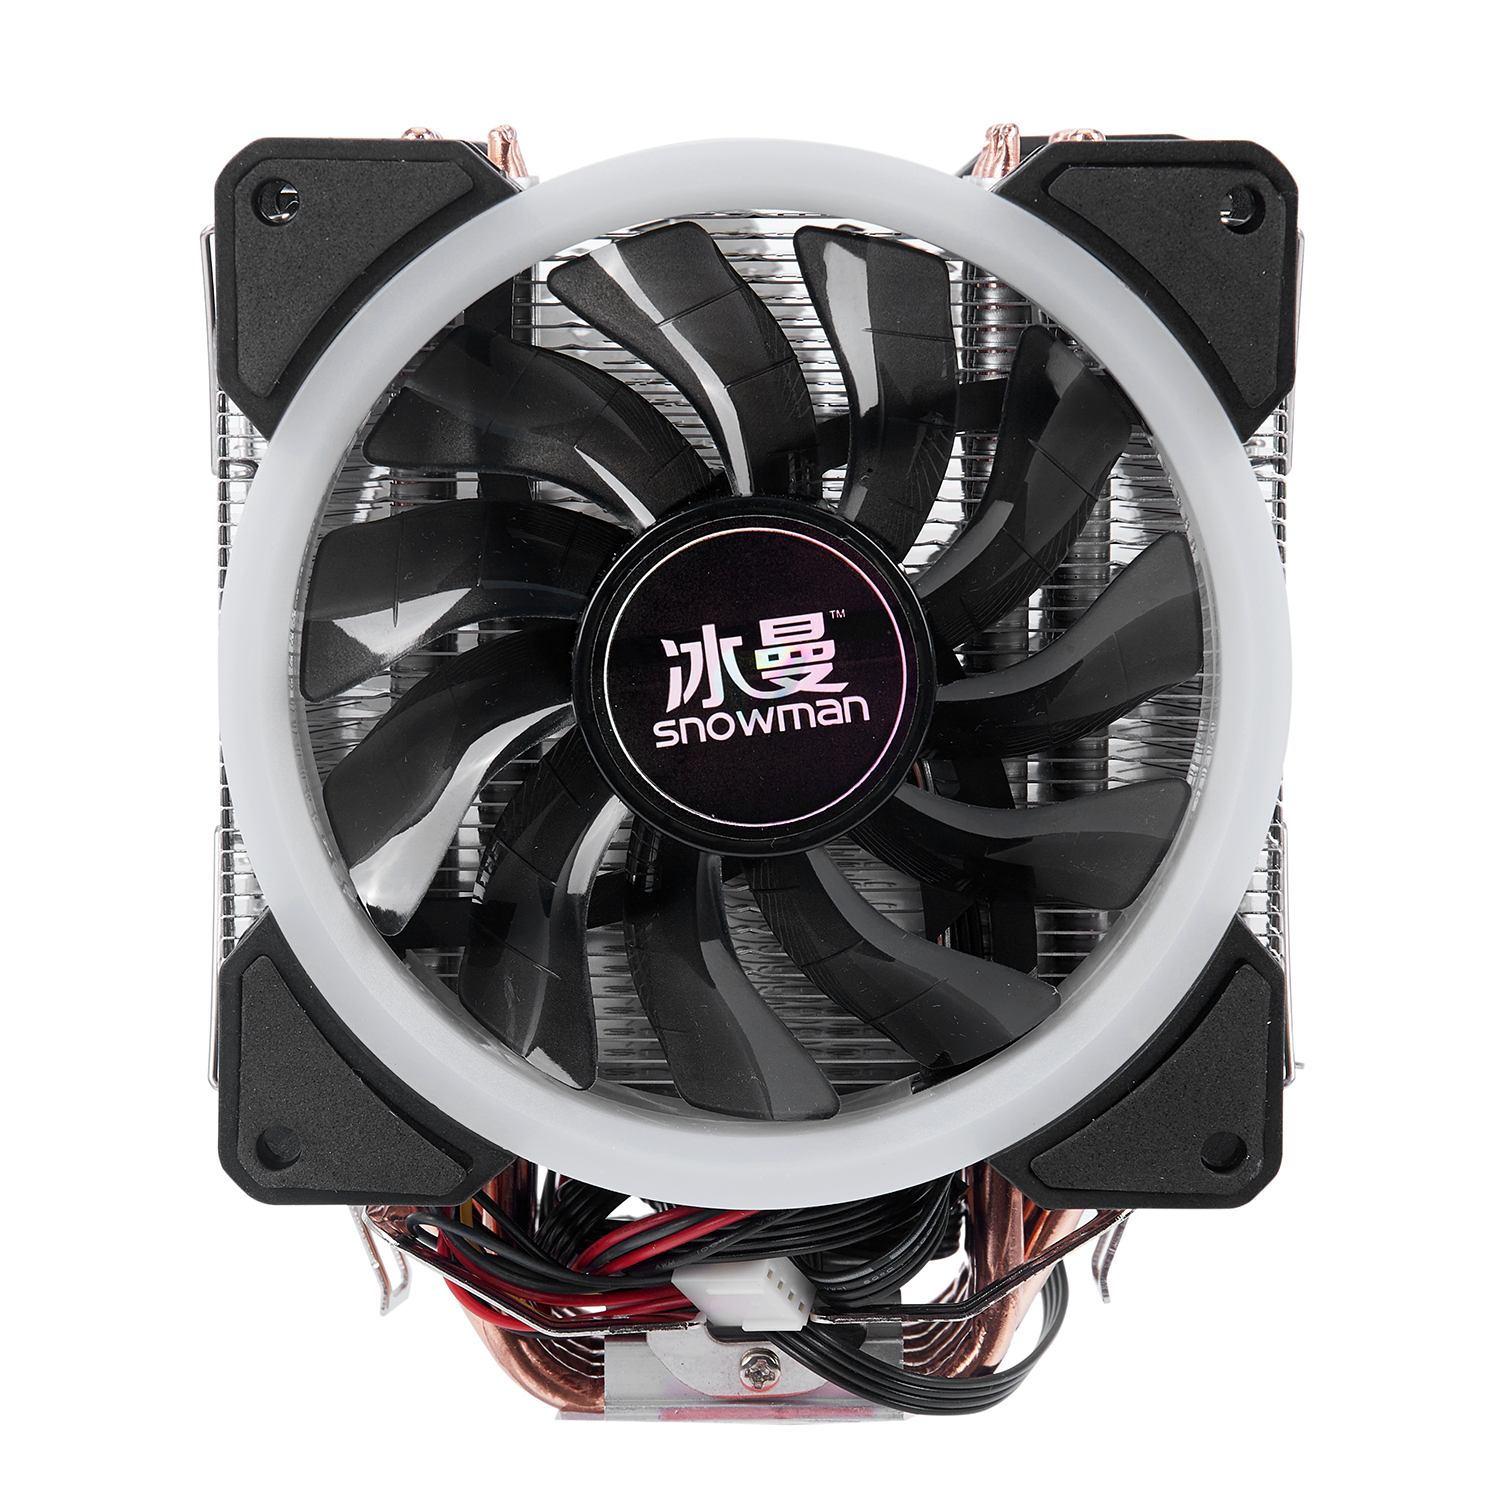 SNOWMAN 4PIN CPU cooler 6 heatpipe RGB LED Double fans cooling 12cm fan LGA775 1151 115x 1366 support Intel AMDSNOWMAN 4PIN CPU cooler 6 heatpipe RGB LED Double fans cooling 12cm fan LGA775 1151 115x 1366 support Intel AMD